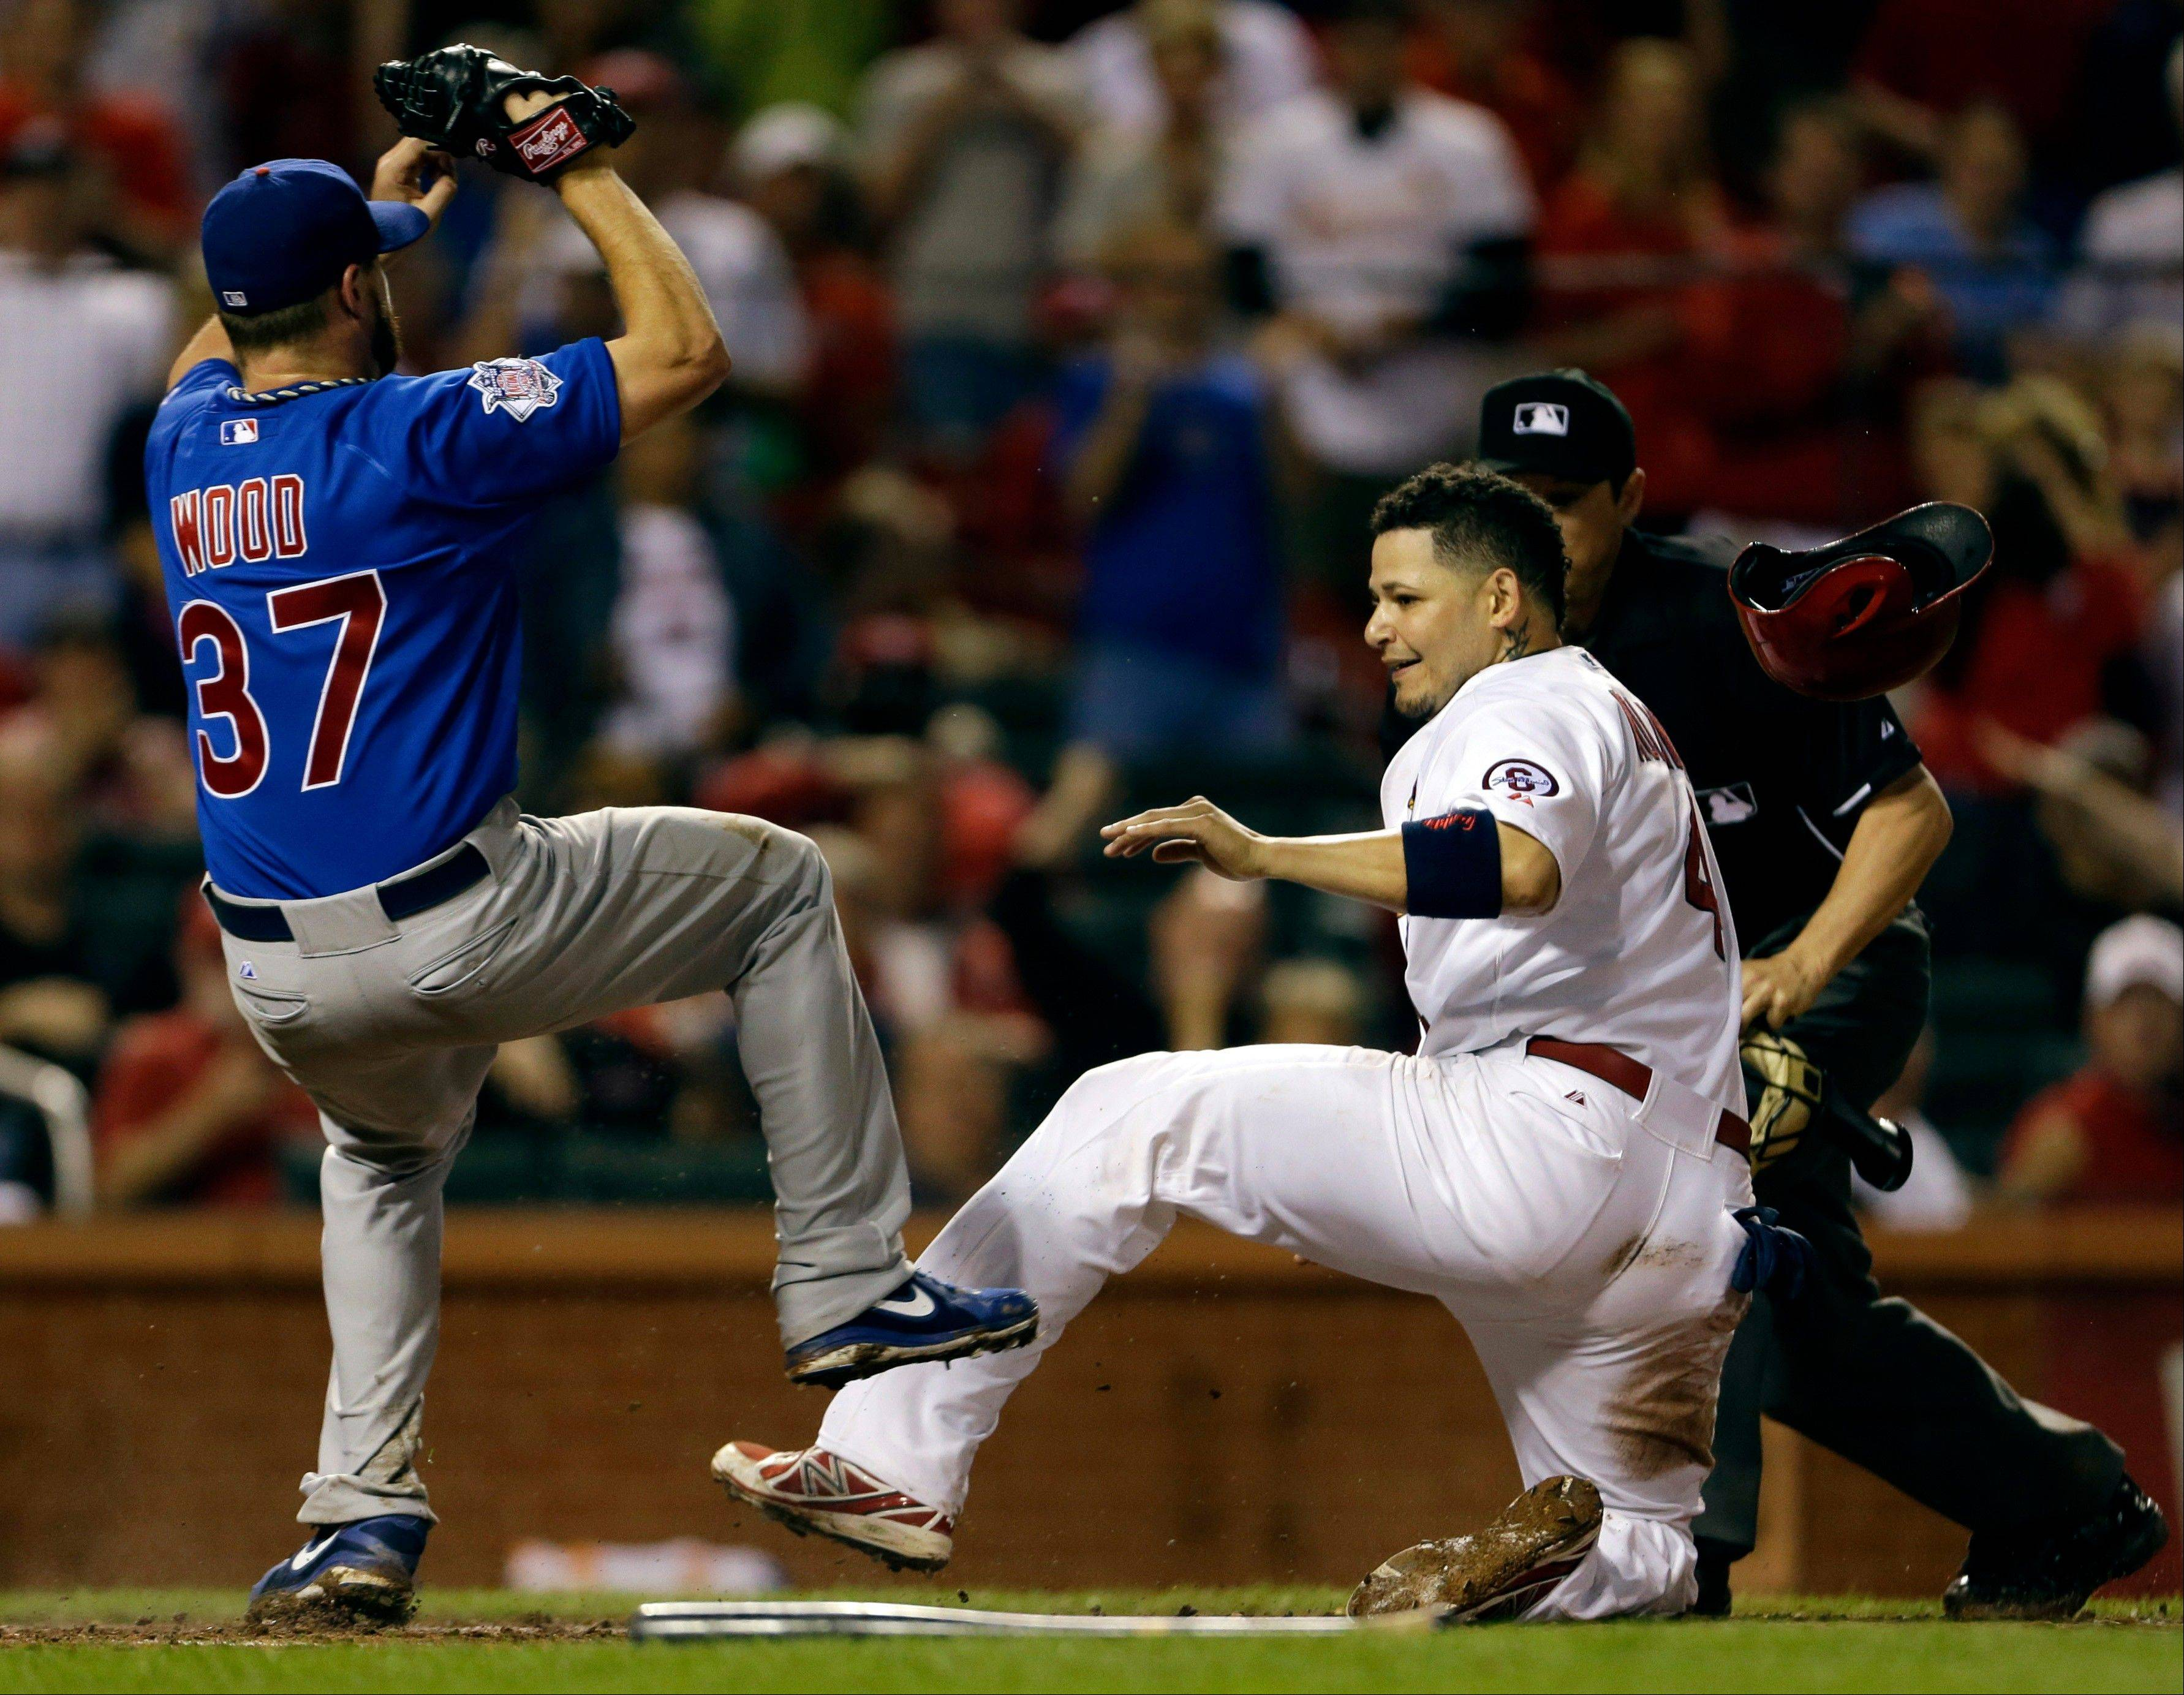 The Cardinals' Yadier Molina slides in ahead of the tag by Cubs starting pitcher Travis Wood during the seventh inning Monday in St. Louis. Molina scored on a throwing error by Cubs first baseman Anthony Rizzo.